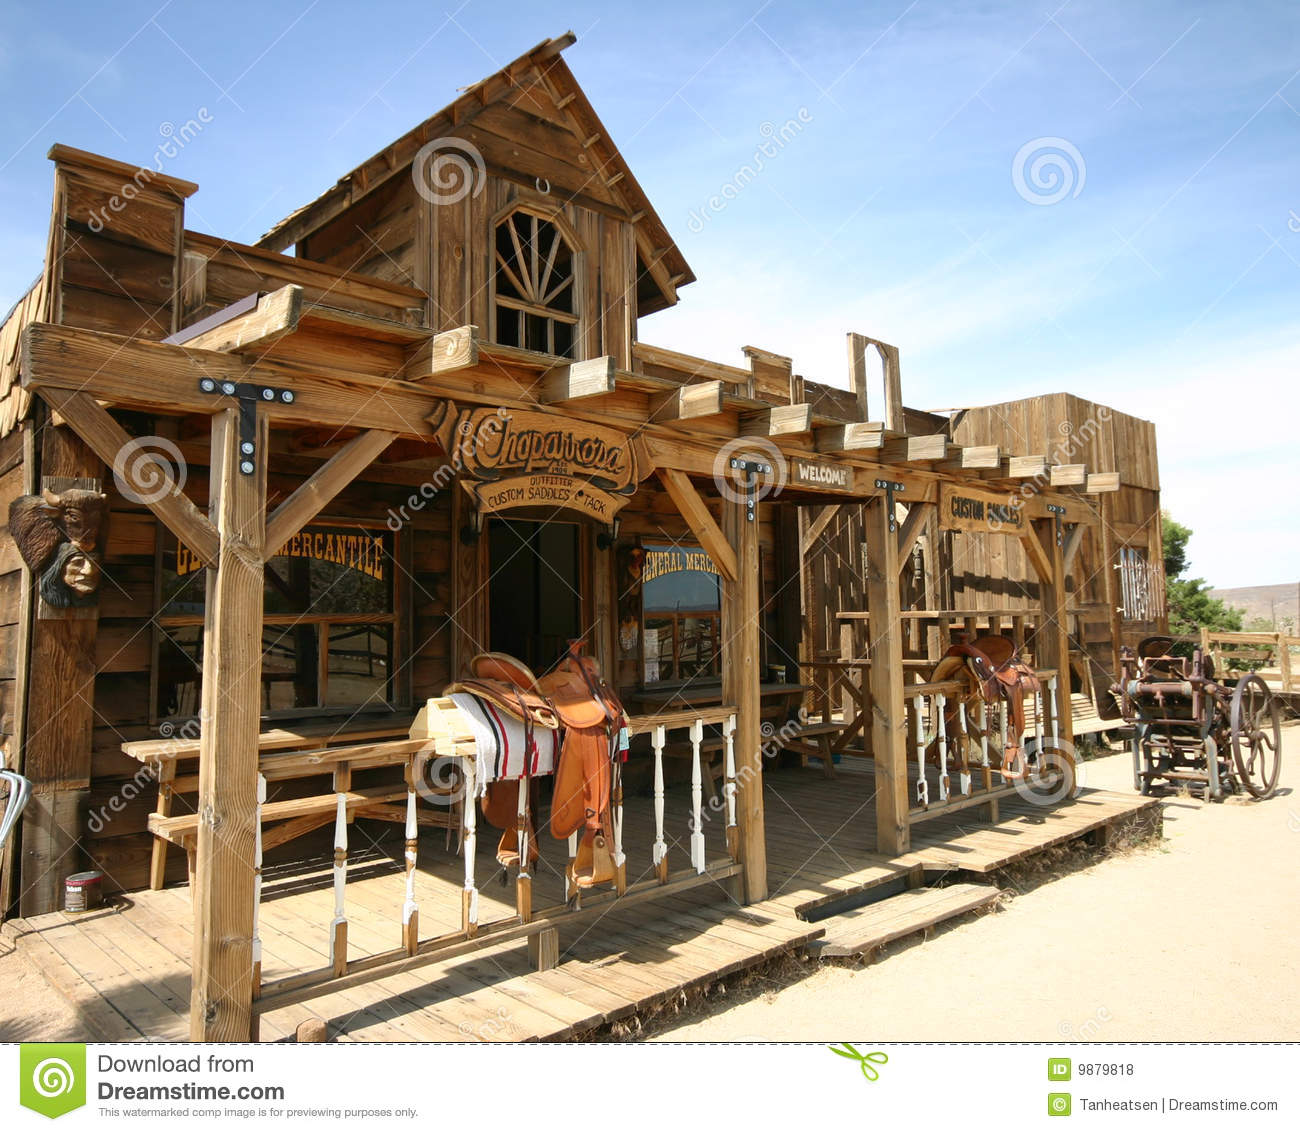 Http Www Dreamstime Com Royalty Free Stock Photos Old Western Town Image9879818